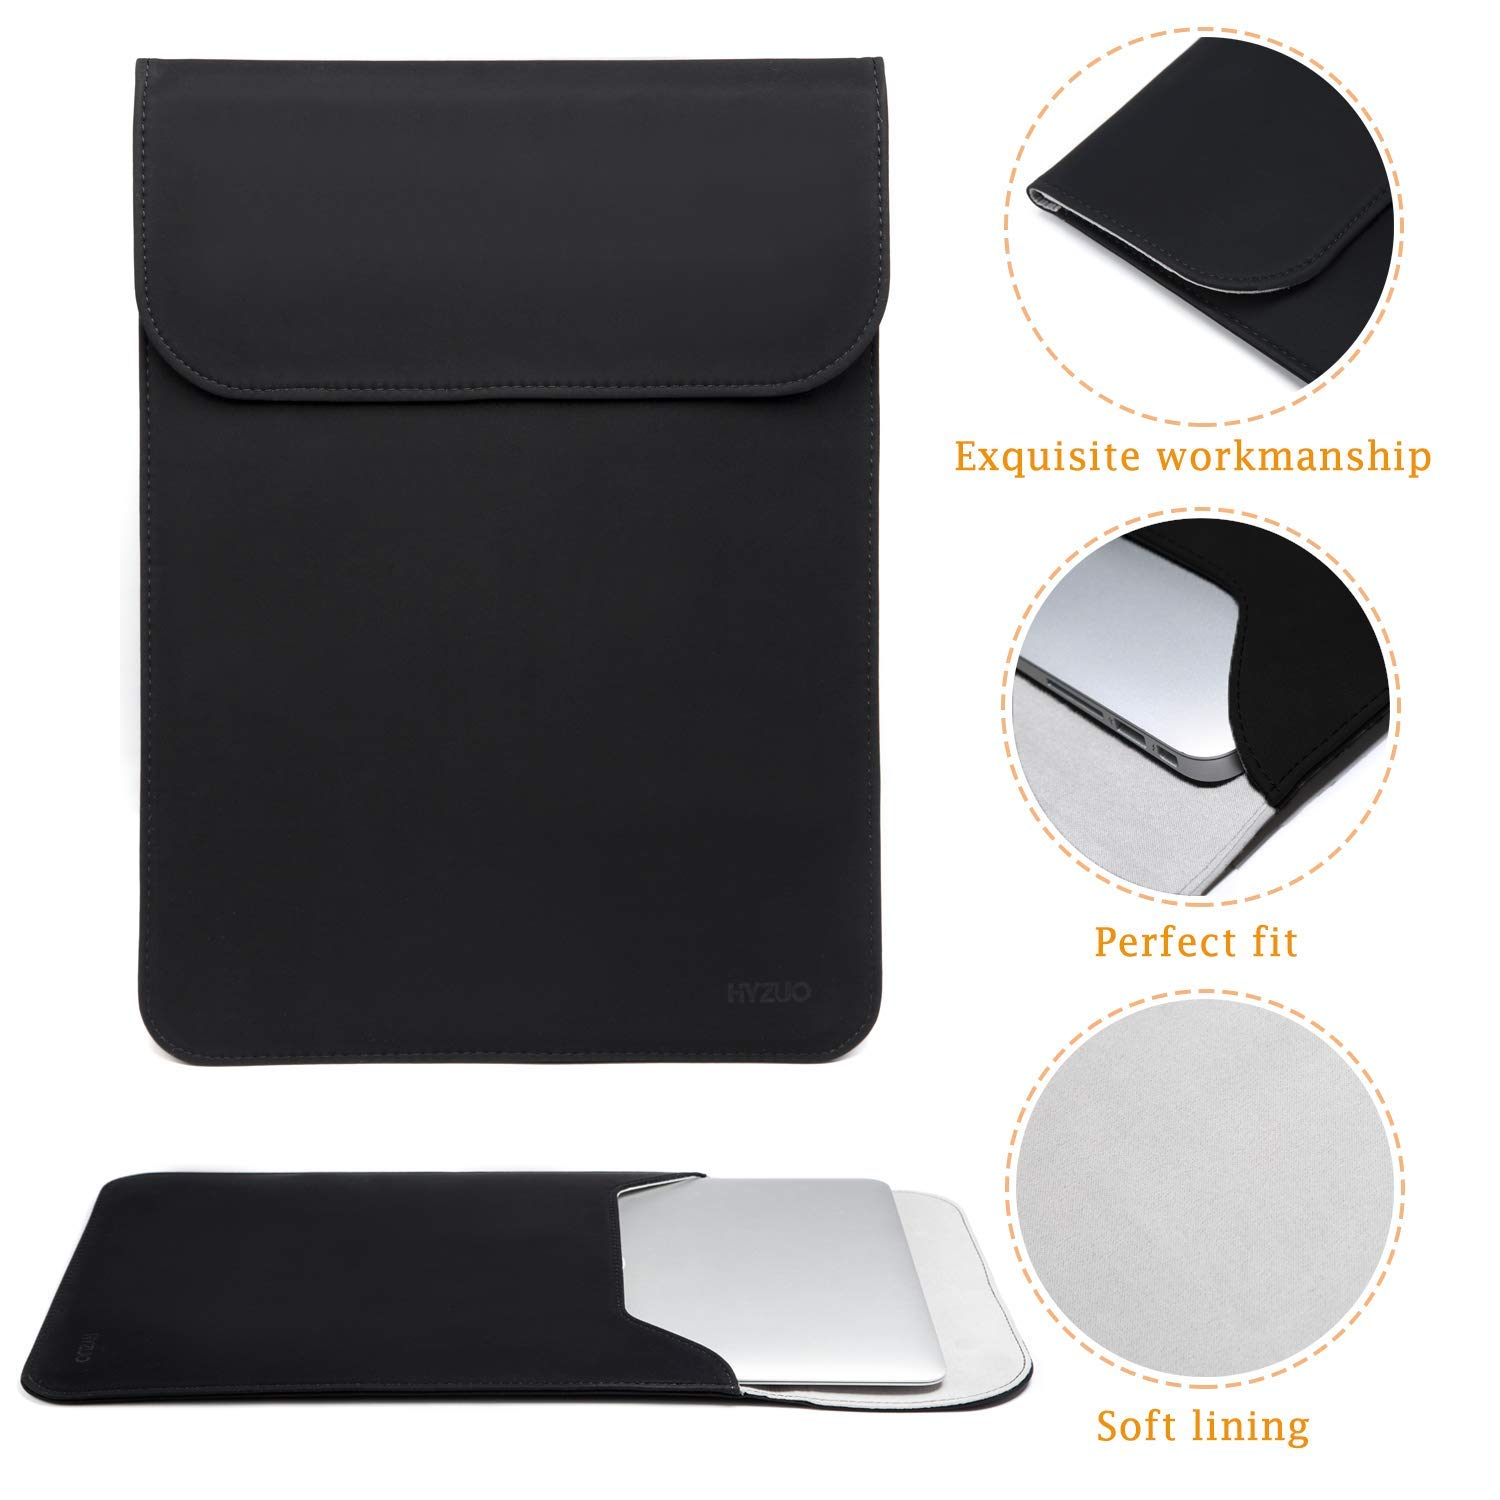 Faux Suede Leather-Dark Grey HYZUO 15 Inch Laptop Sleeve Water-resistant Protective Case Compatible with 15.4 Inch New MacBook Pro with Touch Bar 2016-2018 A1990 A1707 with Carrying Bag